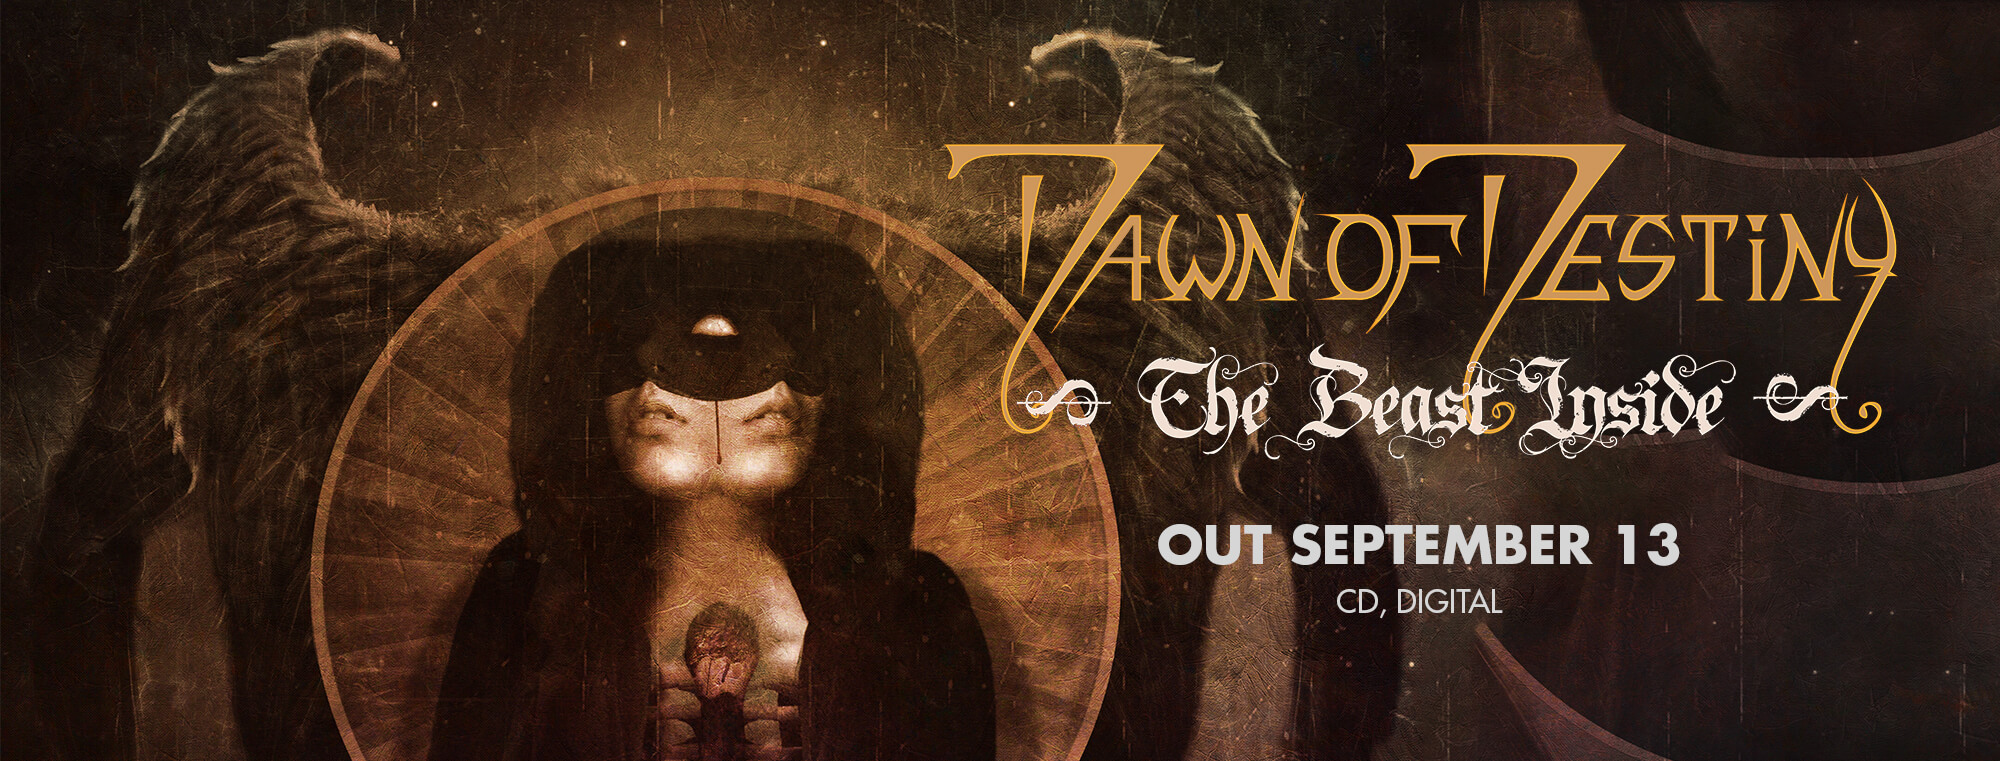 Dawn of Destiny - The Beast Inside Promo Picture